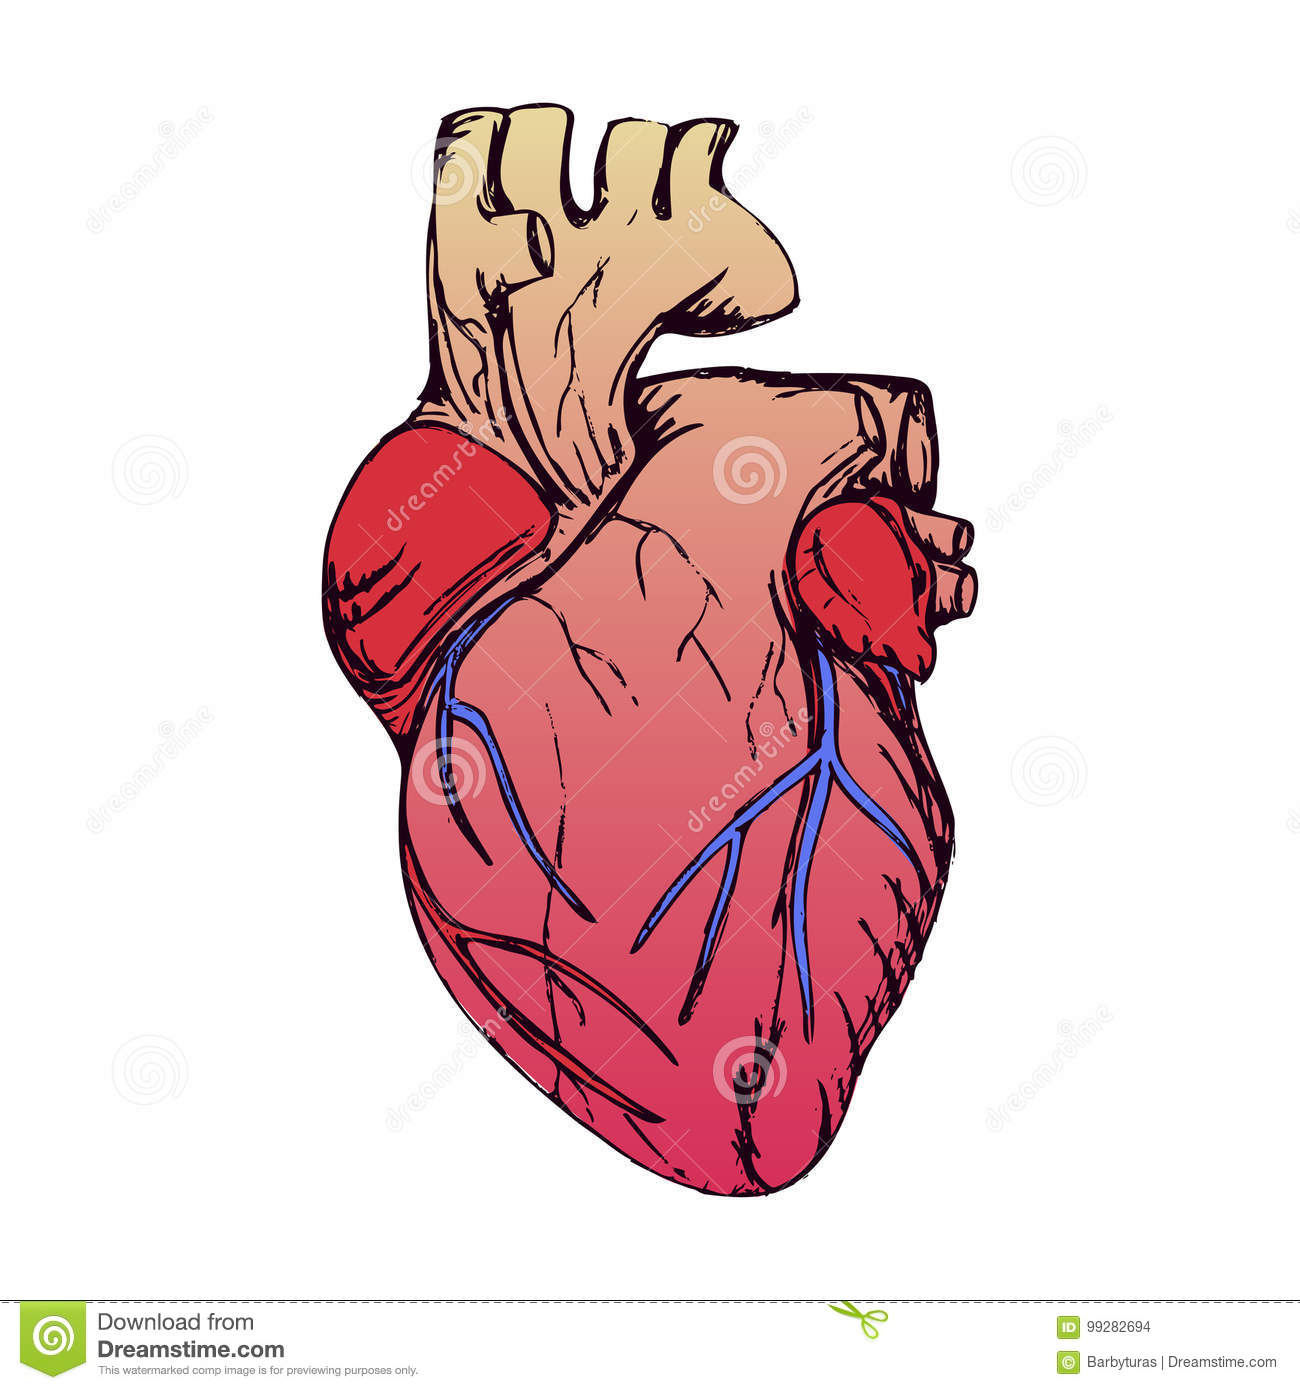 Anatomical Heart Isolated On White Grunge Stile Stock Vector